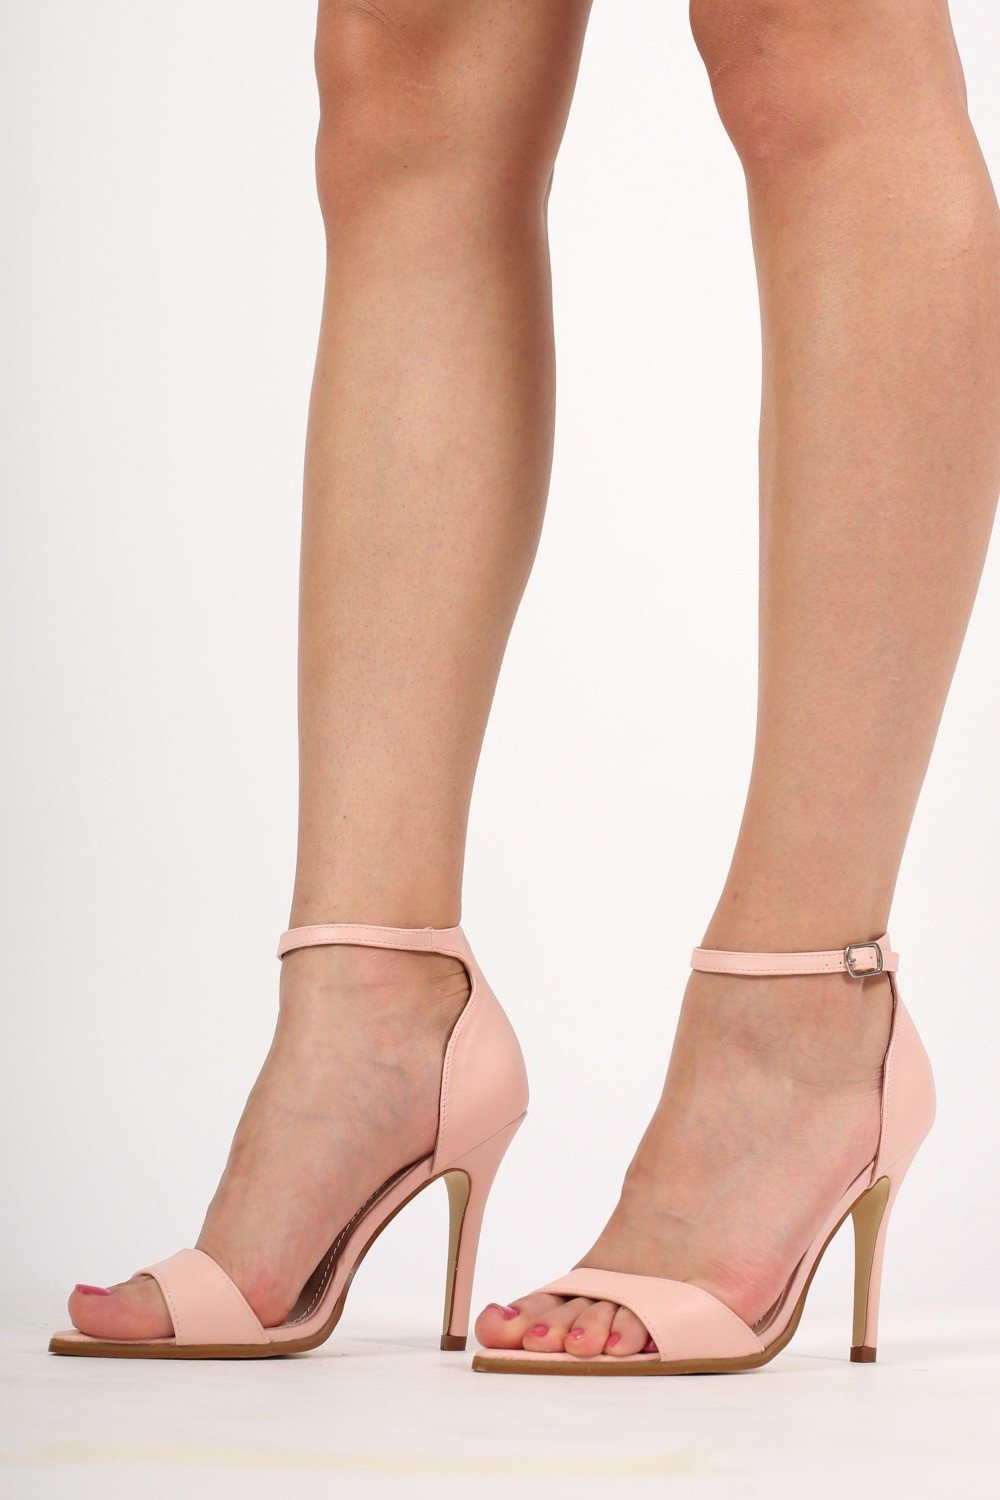 Maya Barely There Strappy High Heel Sandals in Pale Pink MODEL FRONT